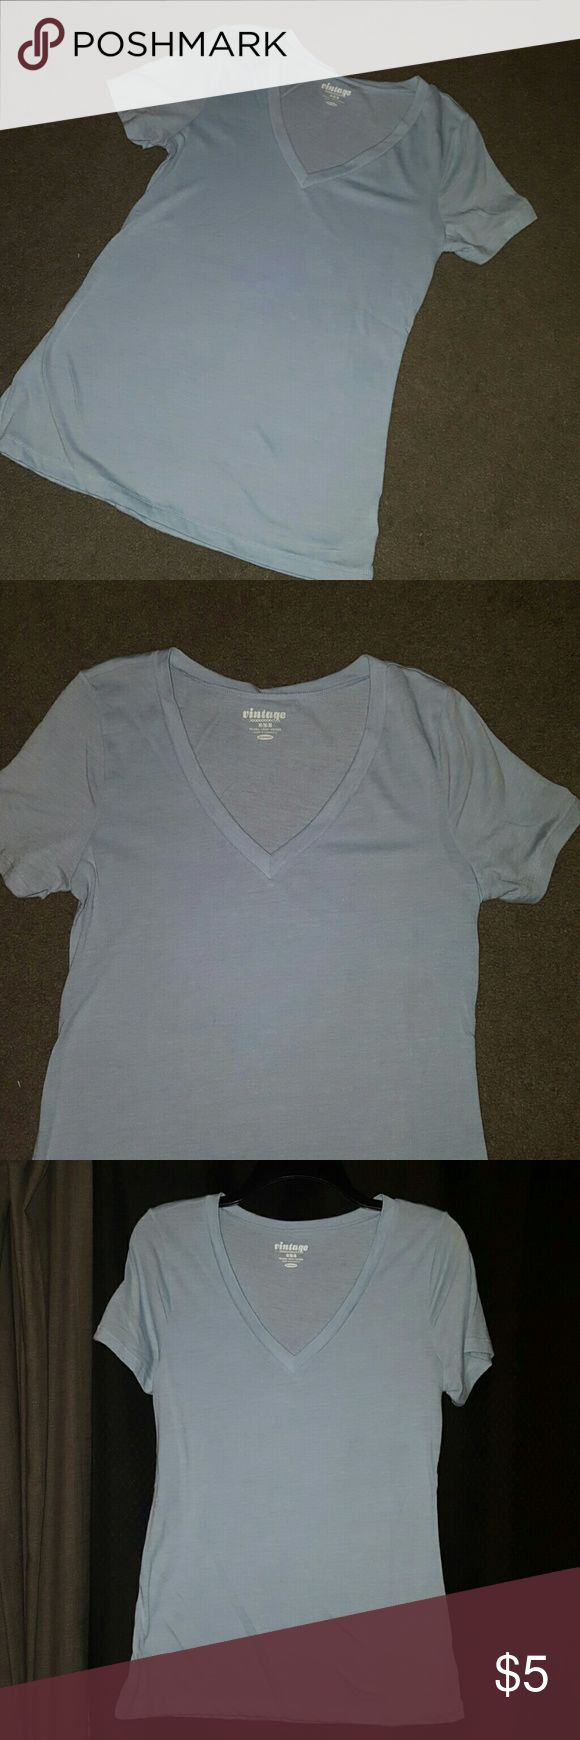 Old Navu Naby Blue V Neck Tee V Neck short sleeve tee. Only worn a few times. Old Navy Tops Tees - Short Sleeve